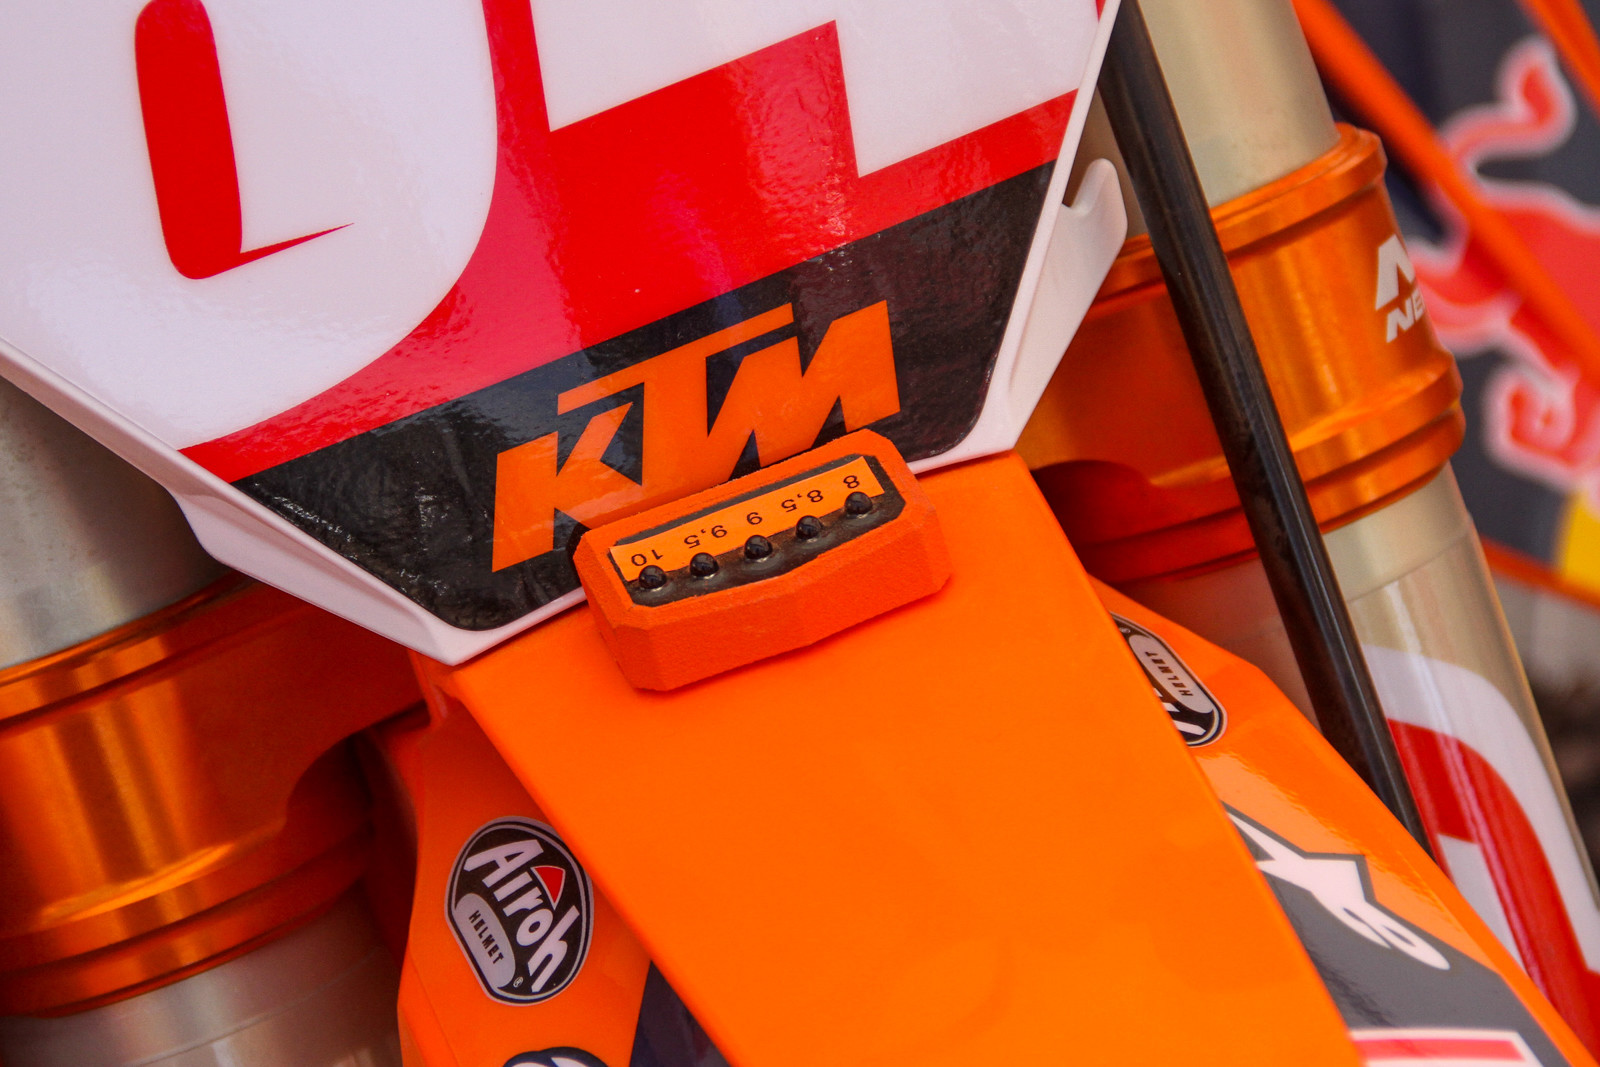 Herlings looks to have a rev counter on the front fender. 8 standing for 8,000rpm, 8.5 for 8,500rpm, etc...a nice little reminder of where you're at on the start.